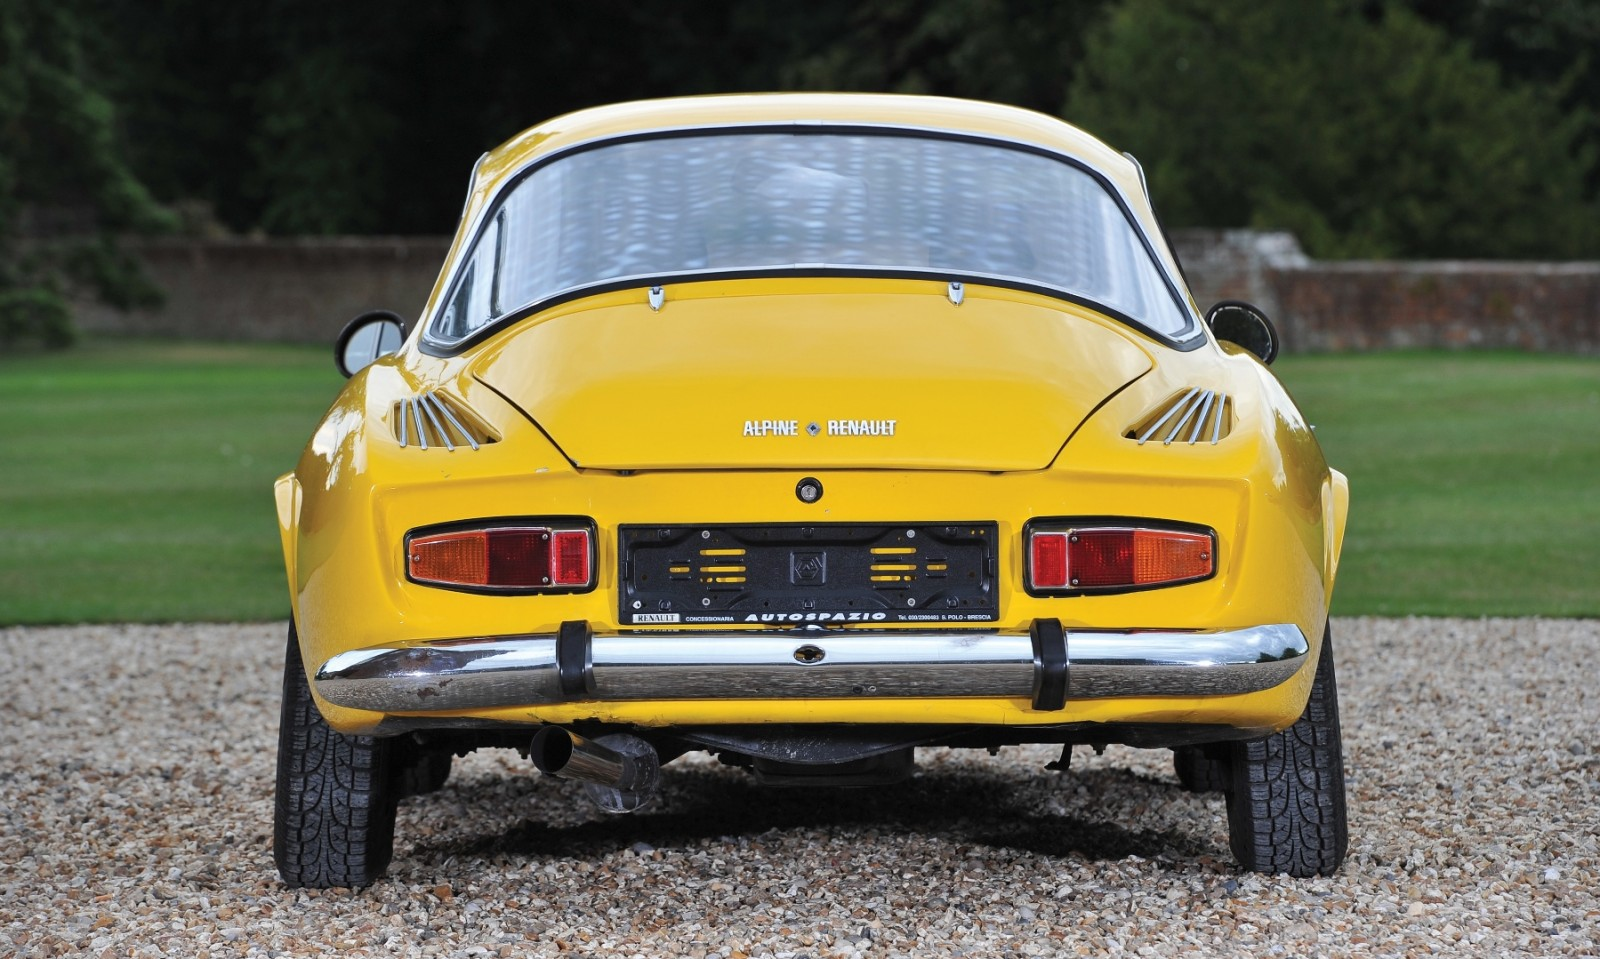 Rm London Highlights Gallery - 1973 Alpine A110 Berlinette 17